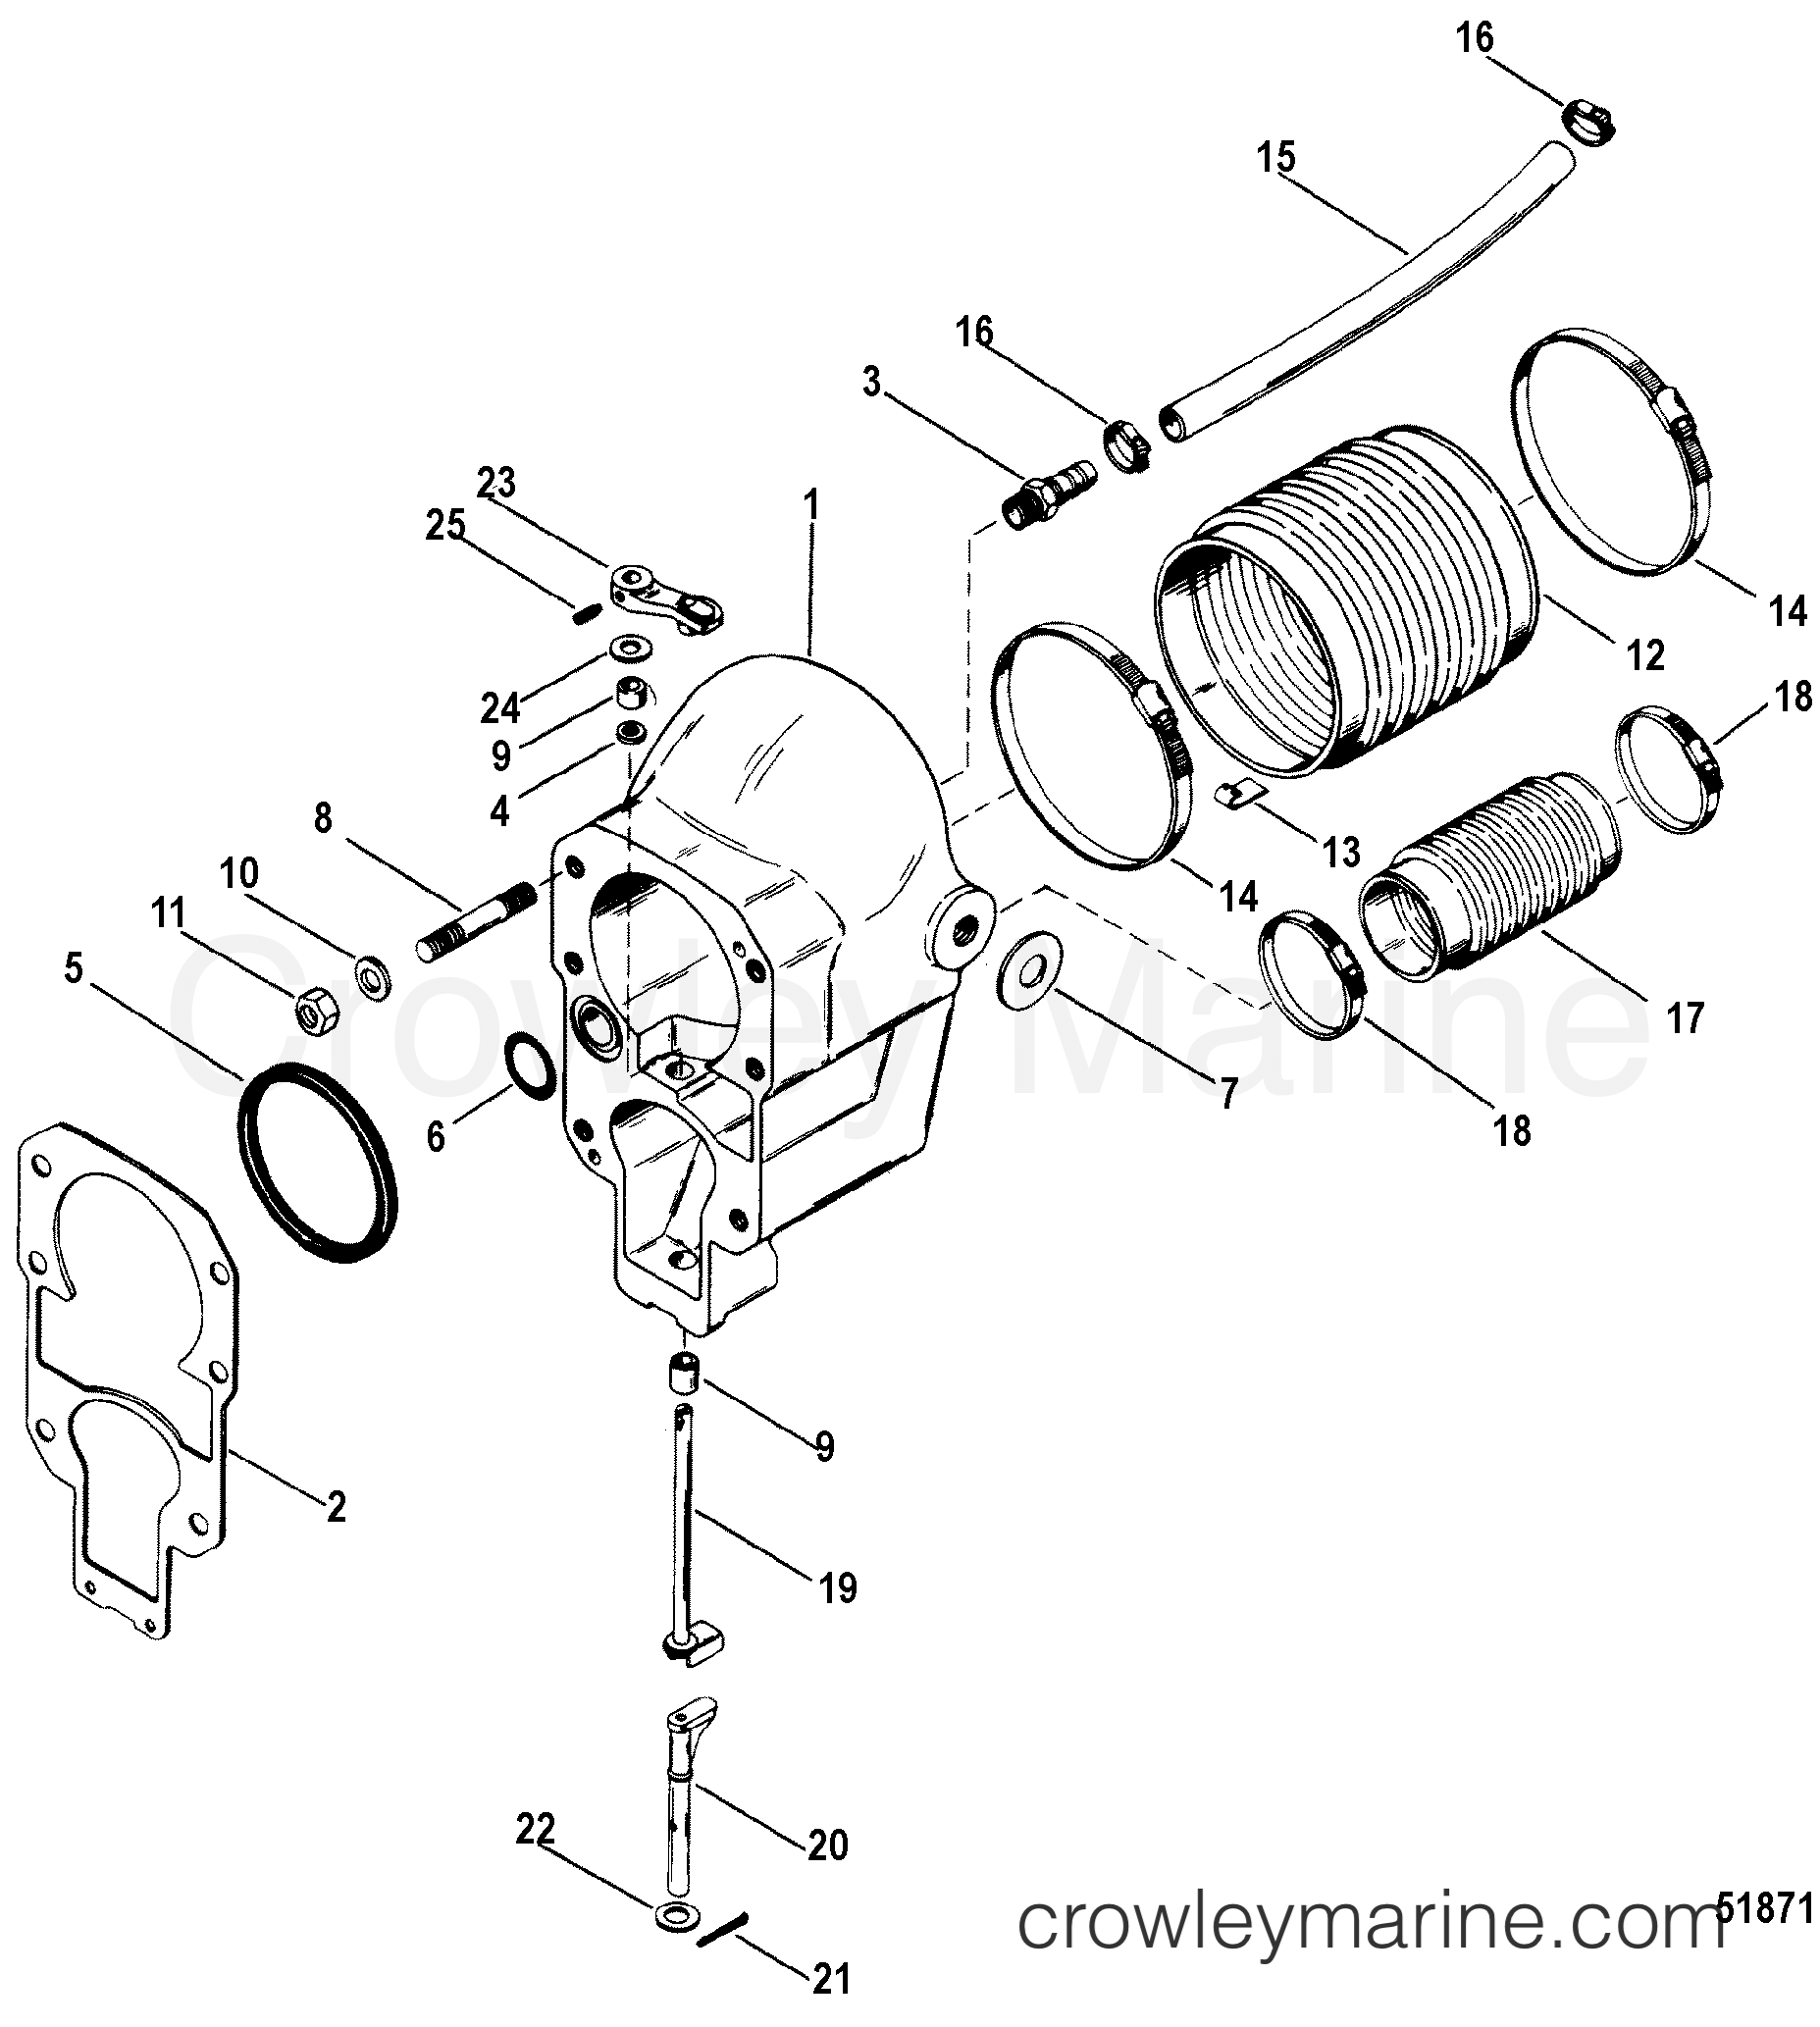 Mercruiser 888 Outdrive Parts Diagram. Diagram. Auto